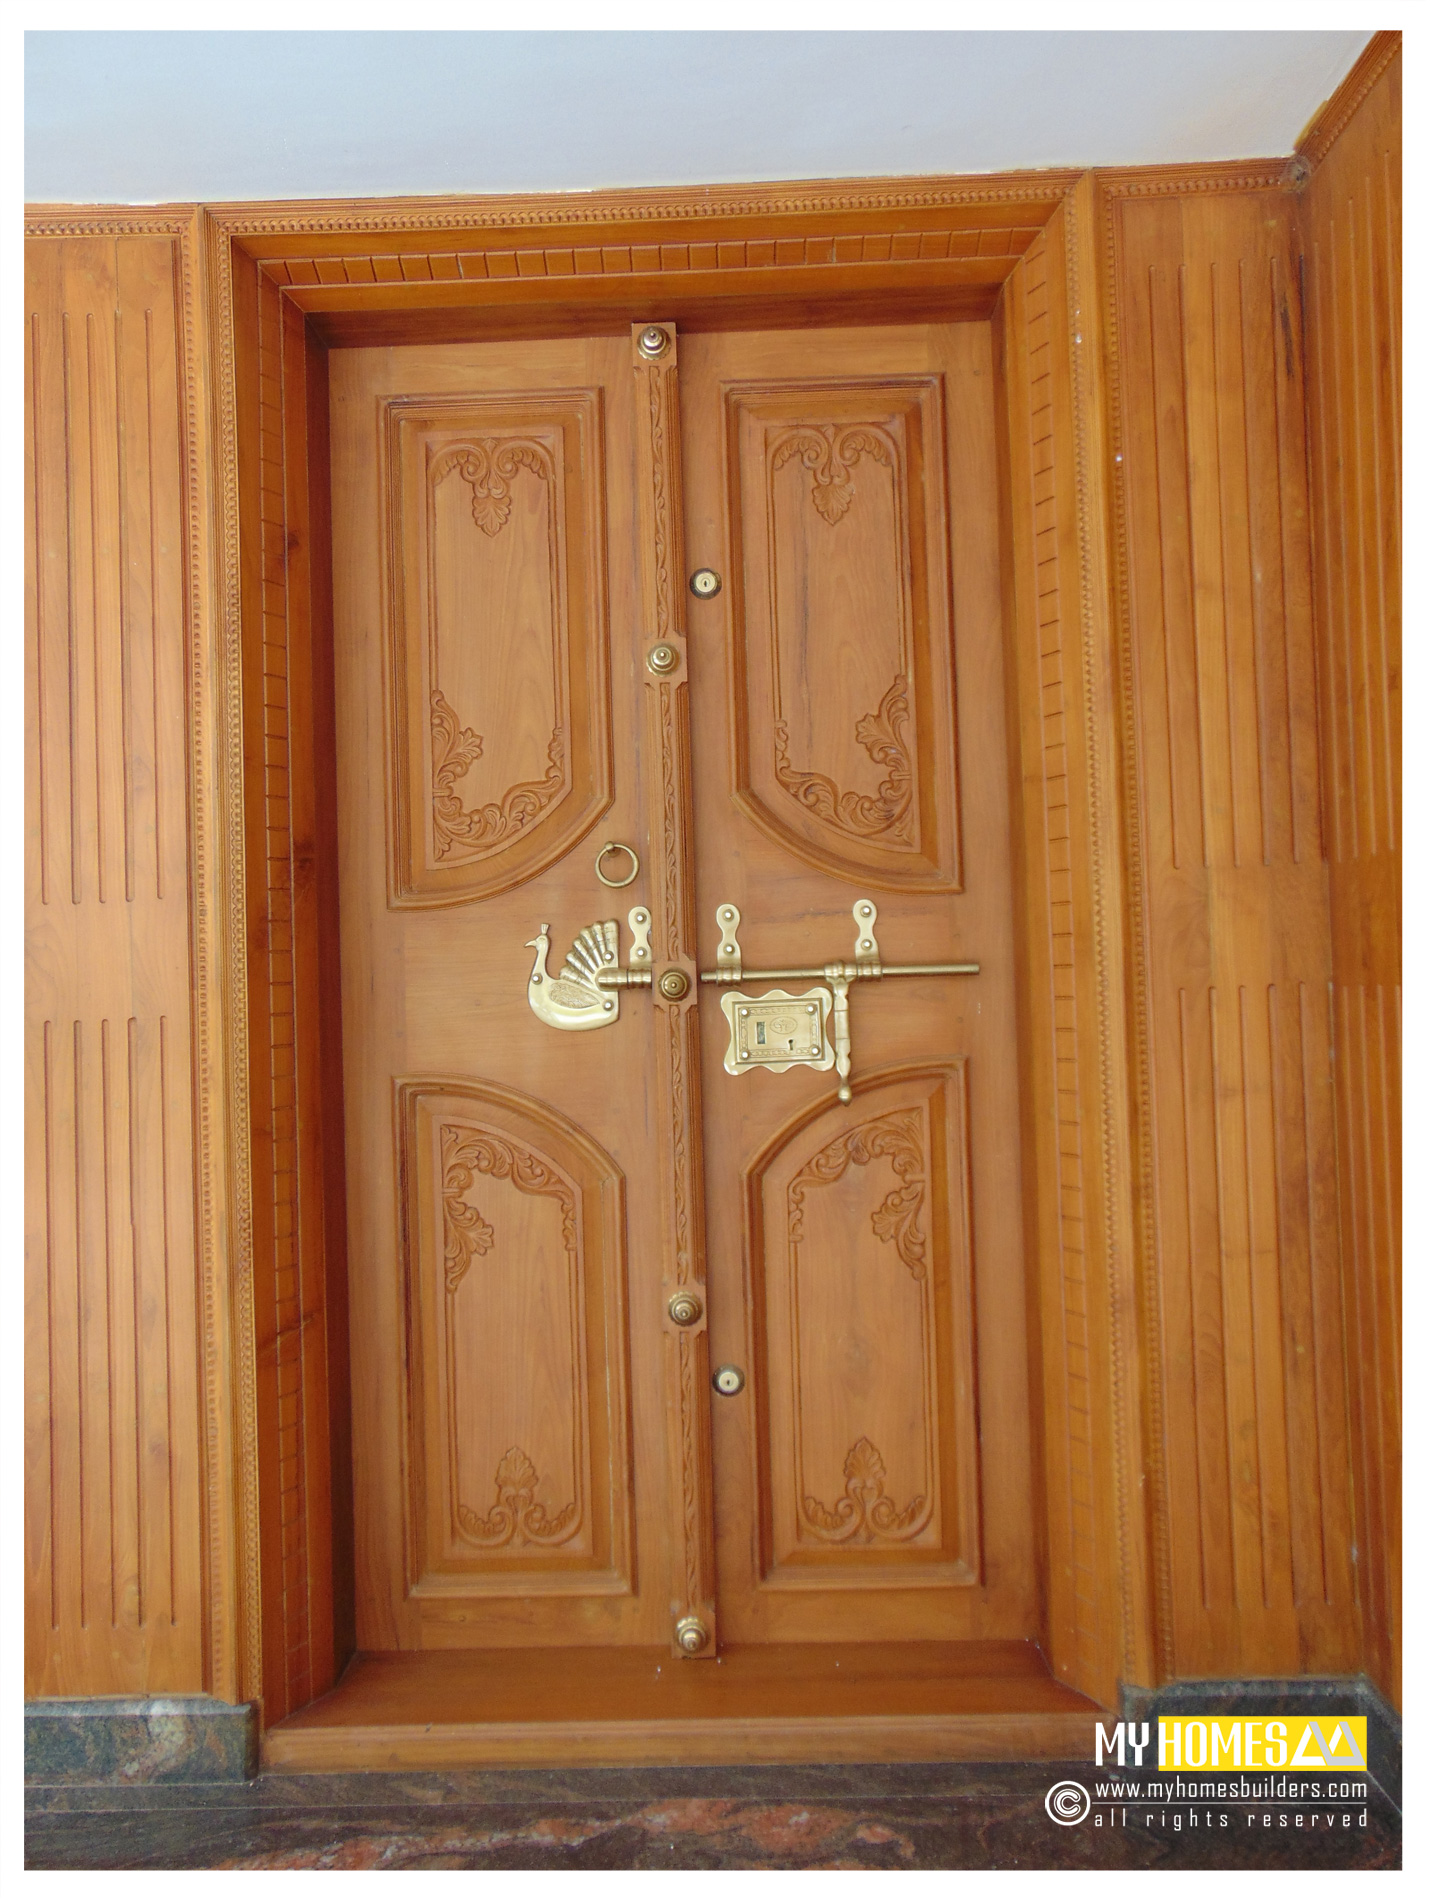 New idea for homes main door designs in kerala india for House front door ideas